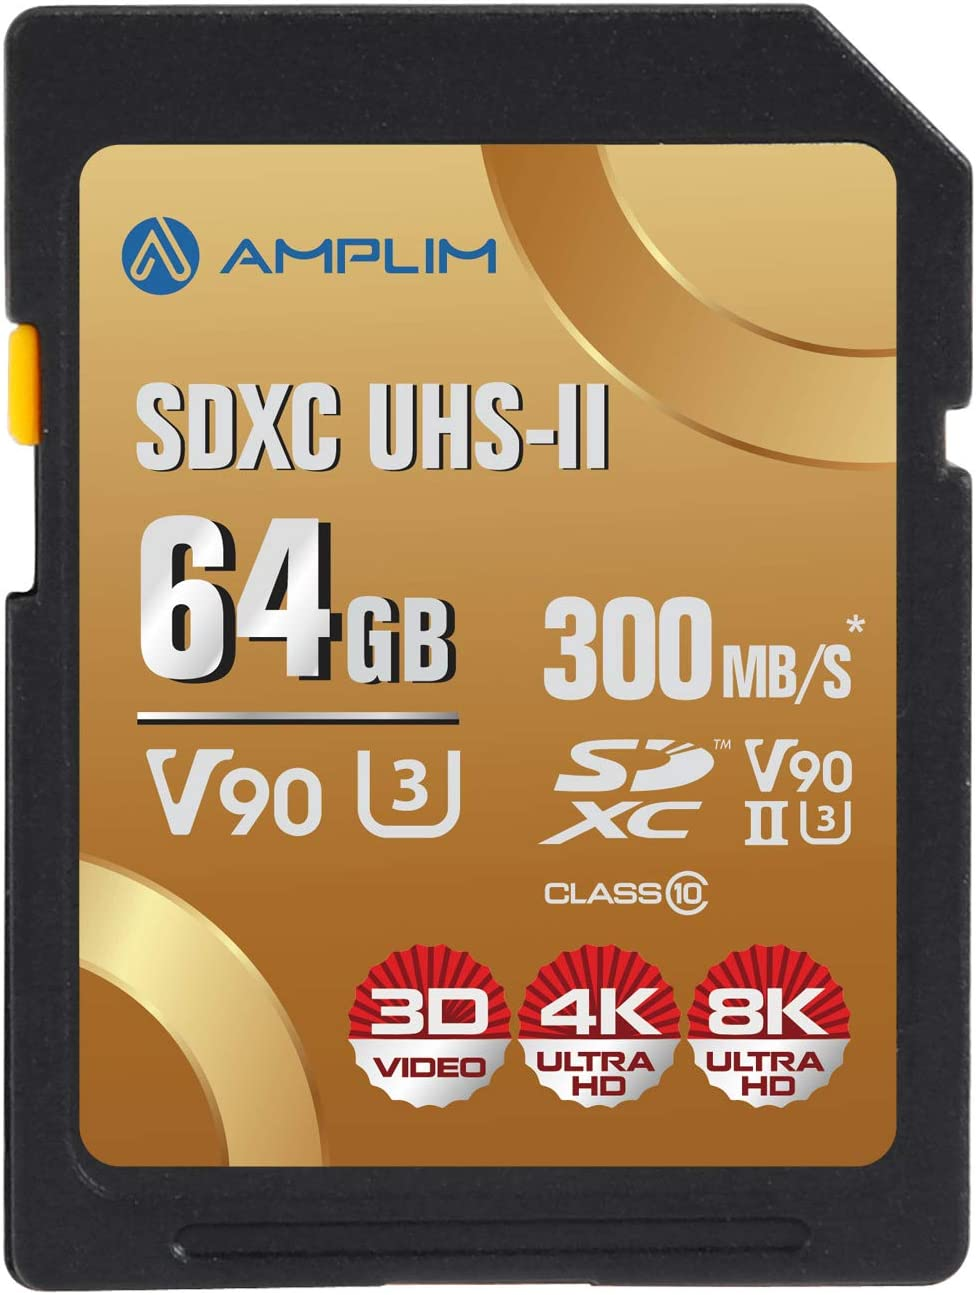 Amplim 64GB V90 UHS-II SD SDXC Card, 300MB/S 2000X Read/Write Lightning Speed Performance, Extreme Read, U3 Secure Digital Memory Storage for Professional Photographer and Videographer